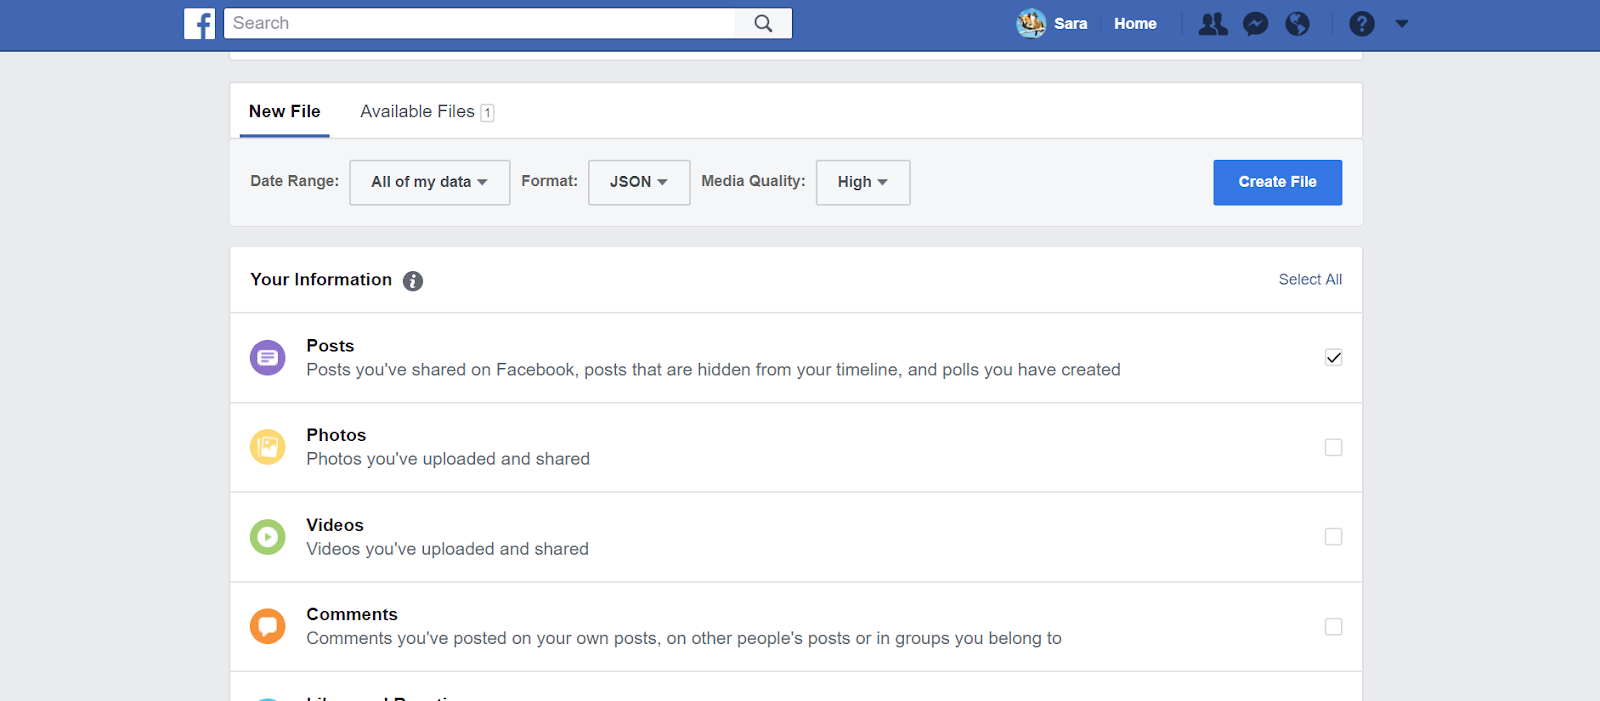 Working with Your Facebook Data in R